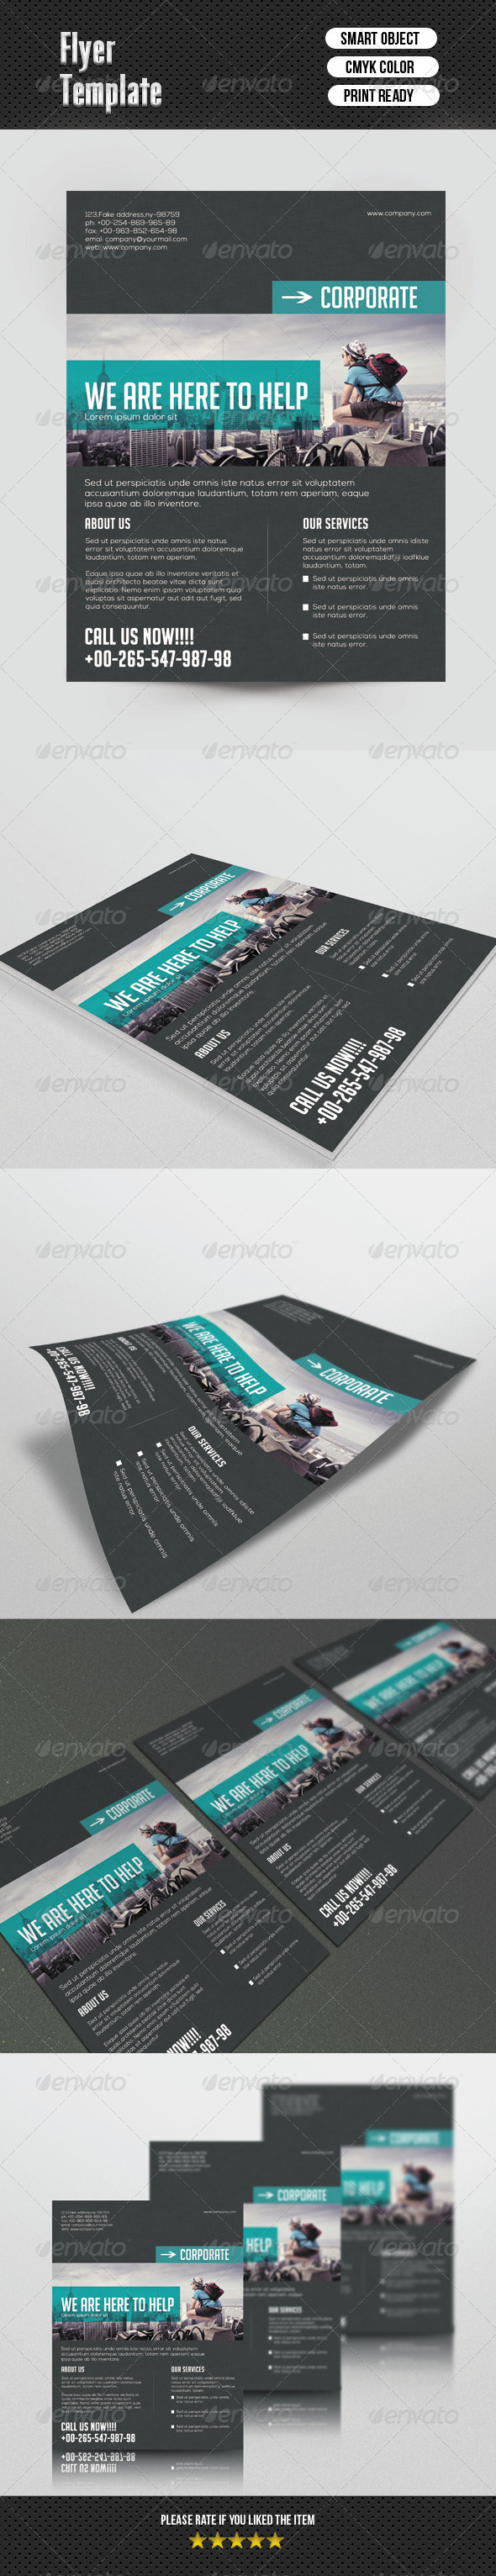 Minimal Flyer Template - Corporate Flyers